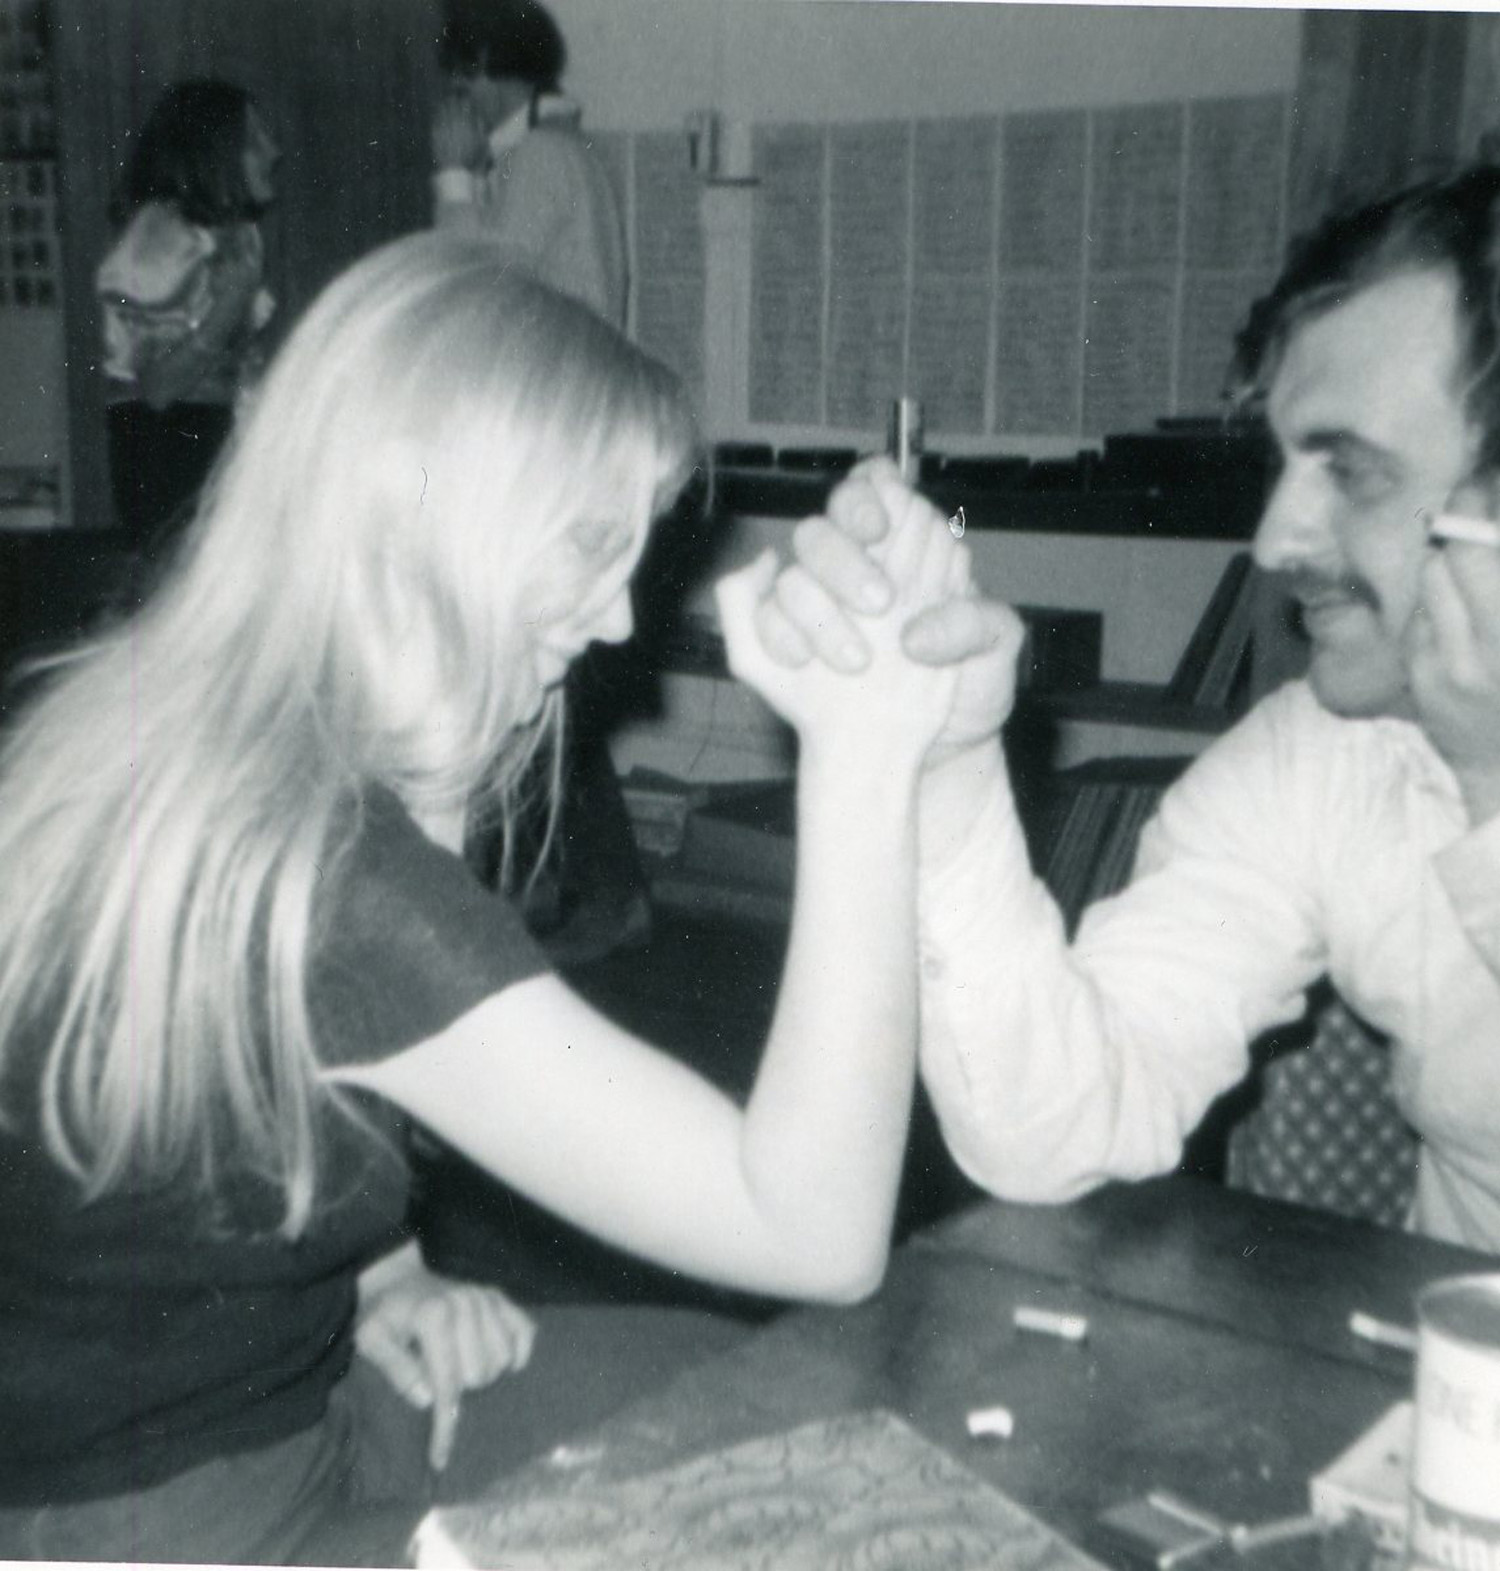 Janet Tate and Mike arm wresting, c. 1971.